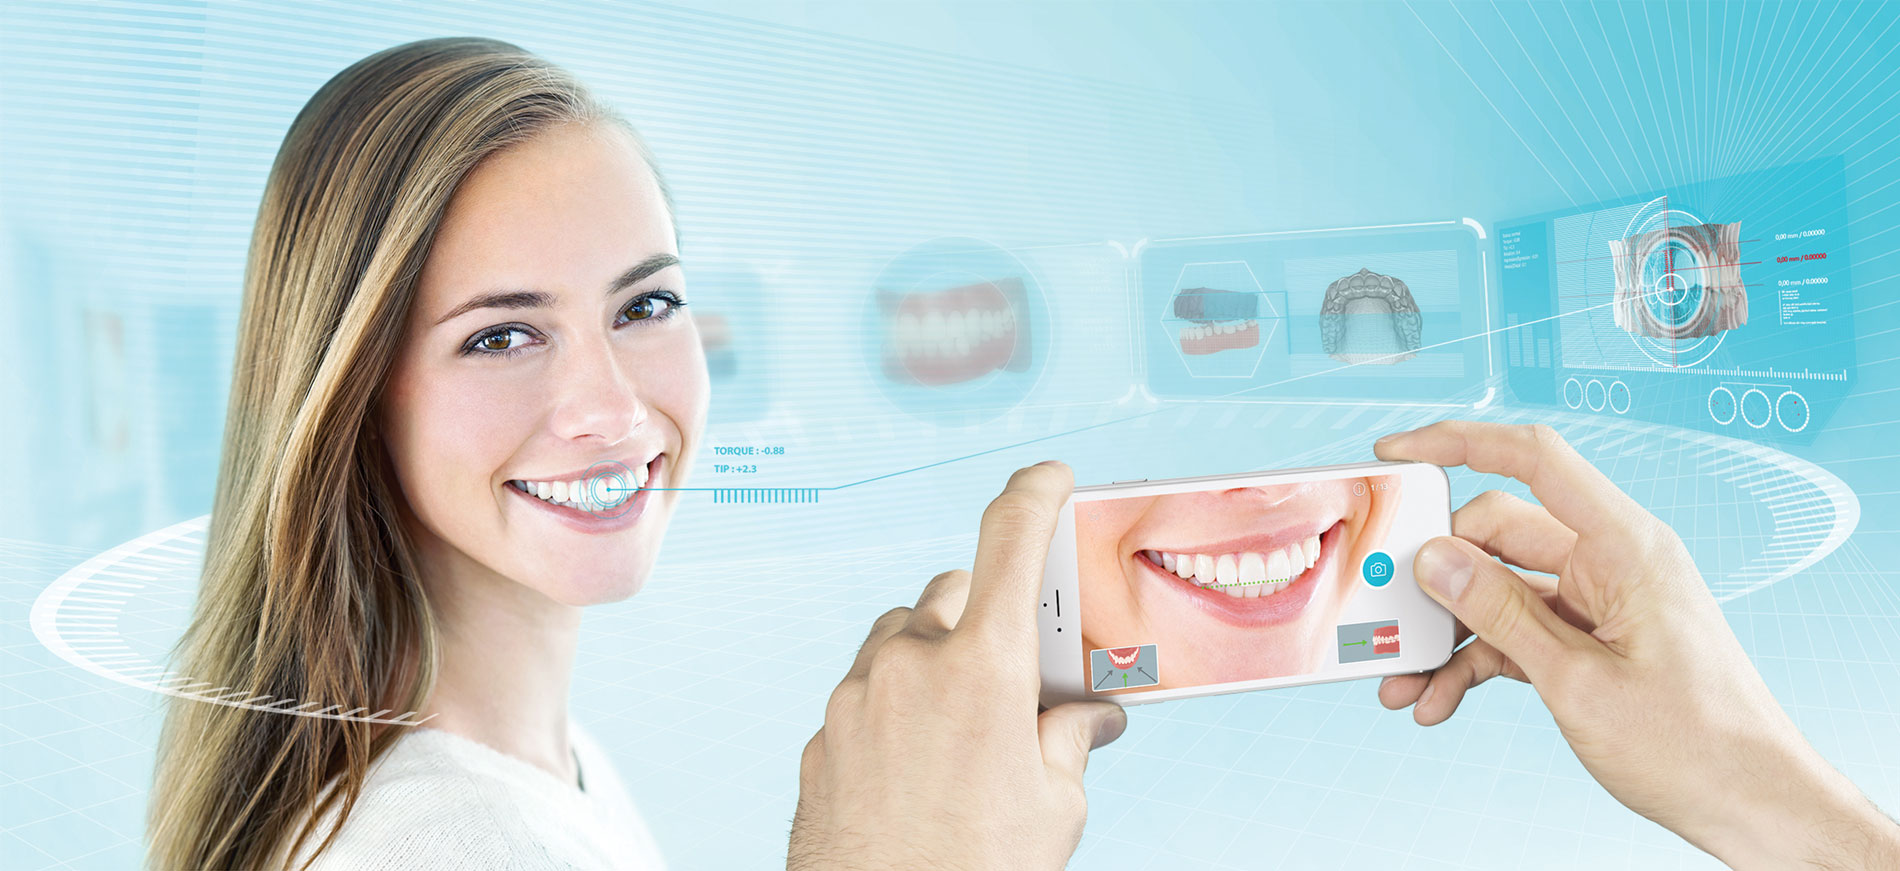 Dr. Lach's Smart Aligners: A Better Way to Your Best Smile